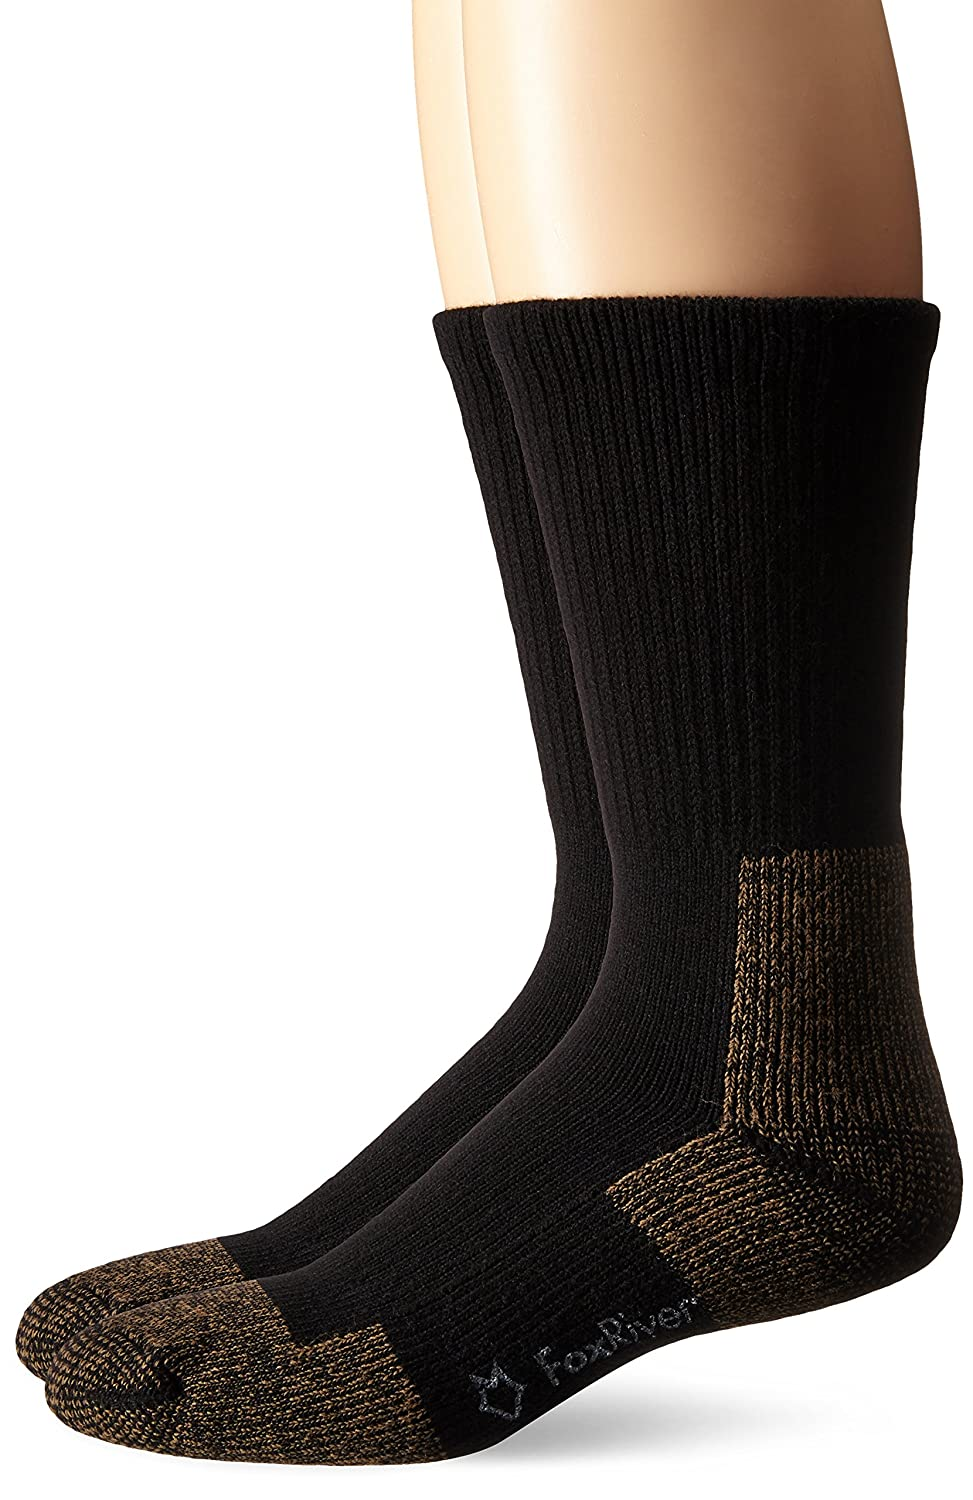 Fox River Heavyweight Work Socks